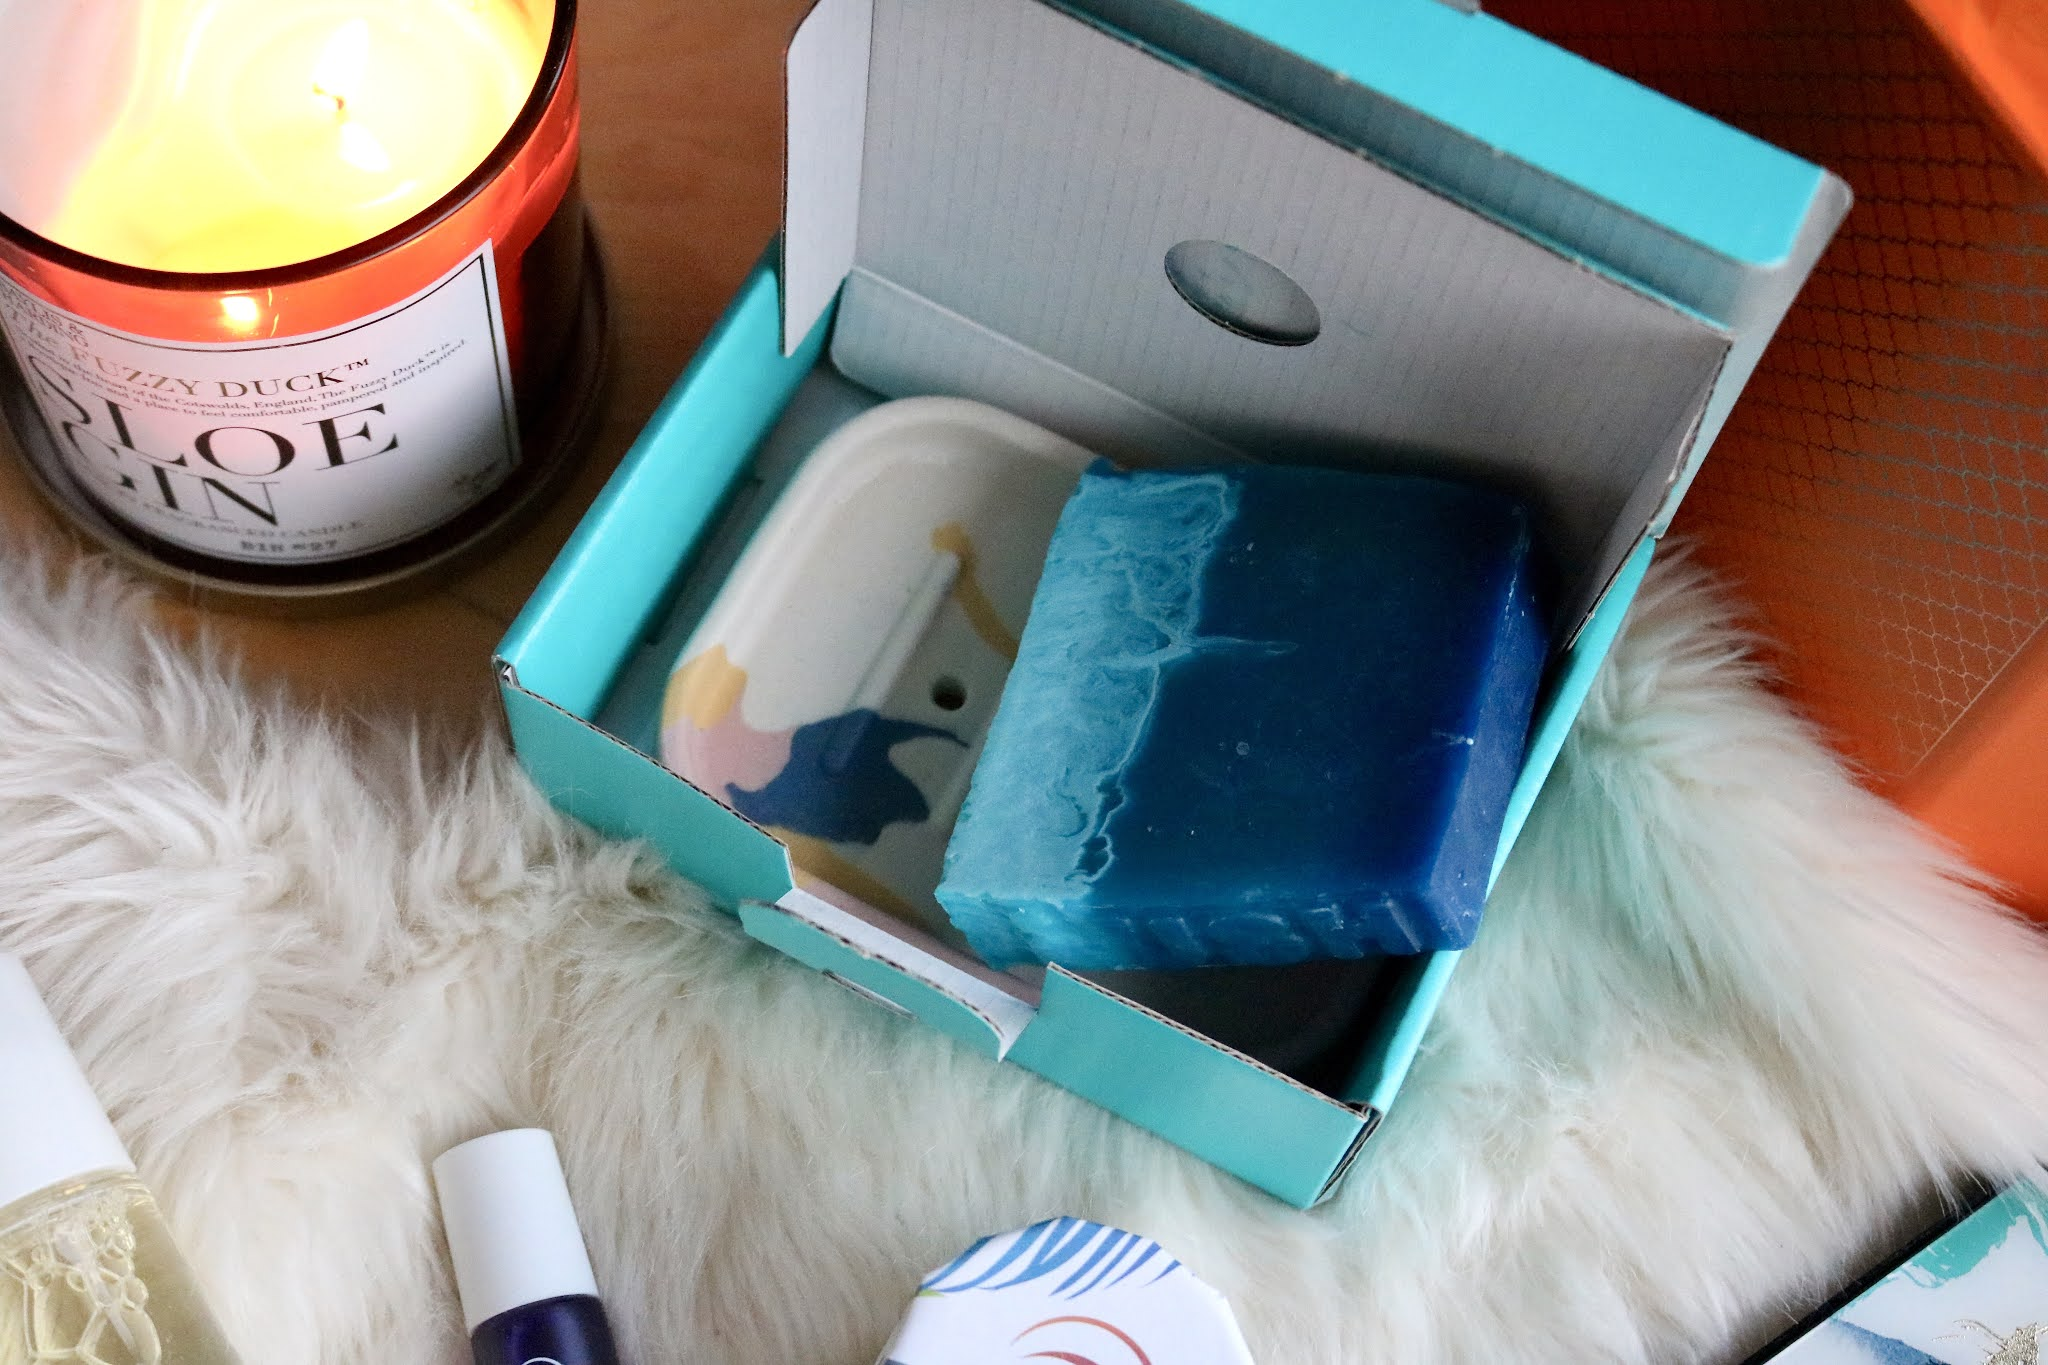 LUSH OUTBACK MATE SOAP AND DISH SET